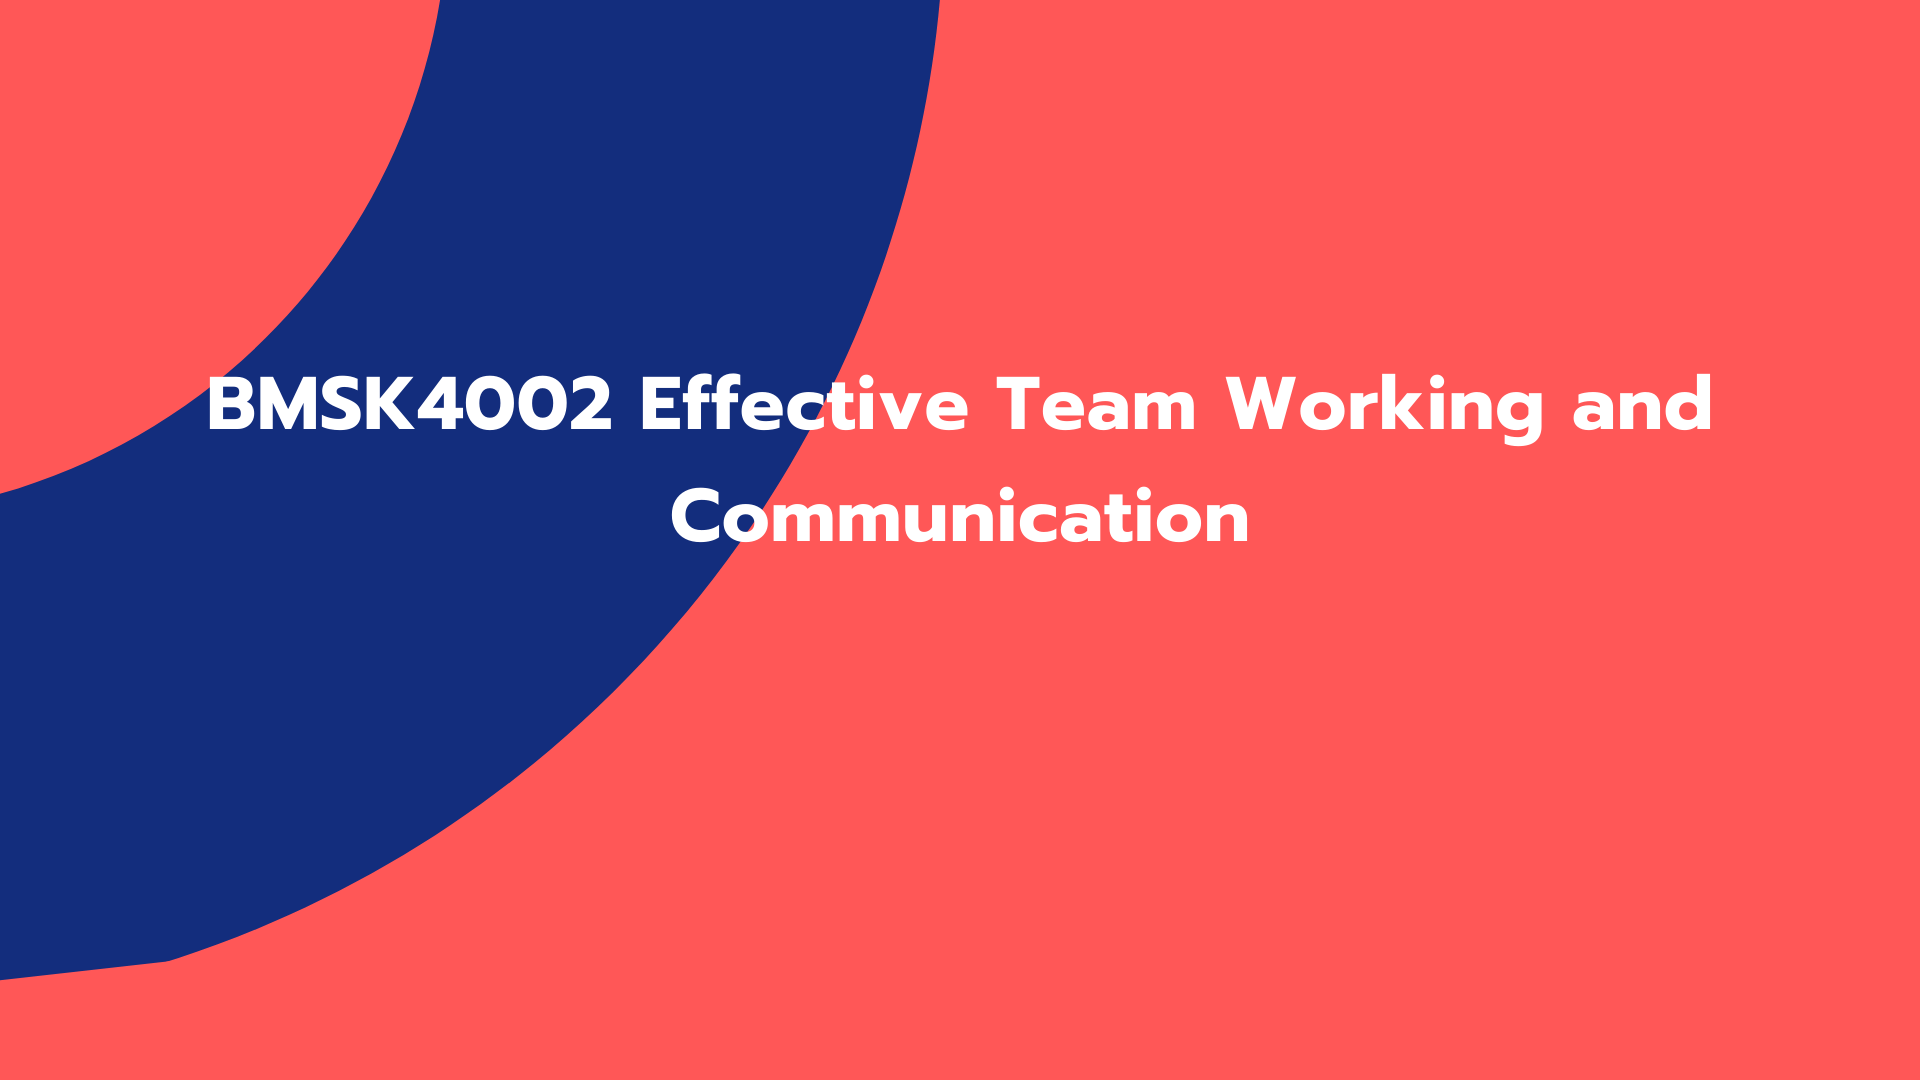 BMSK4002 Effective Team Working and Communication